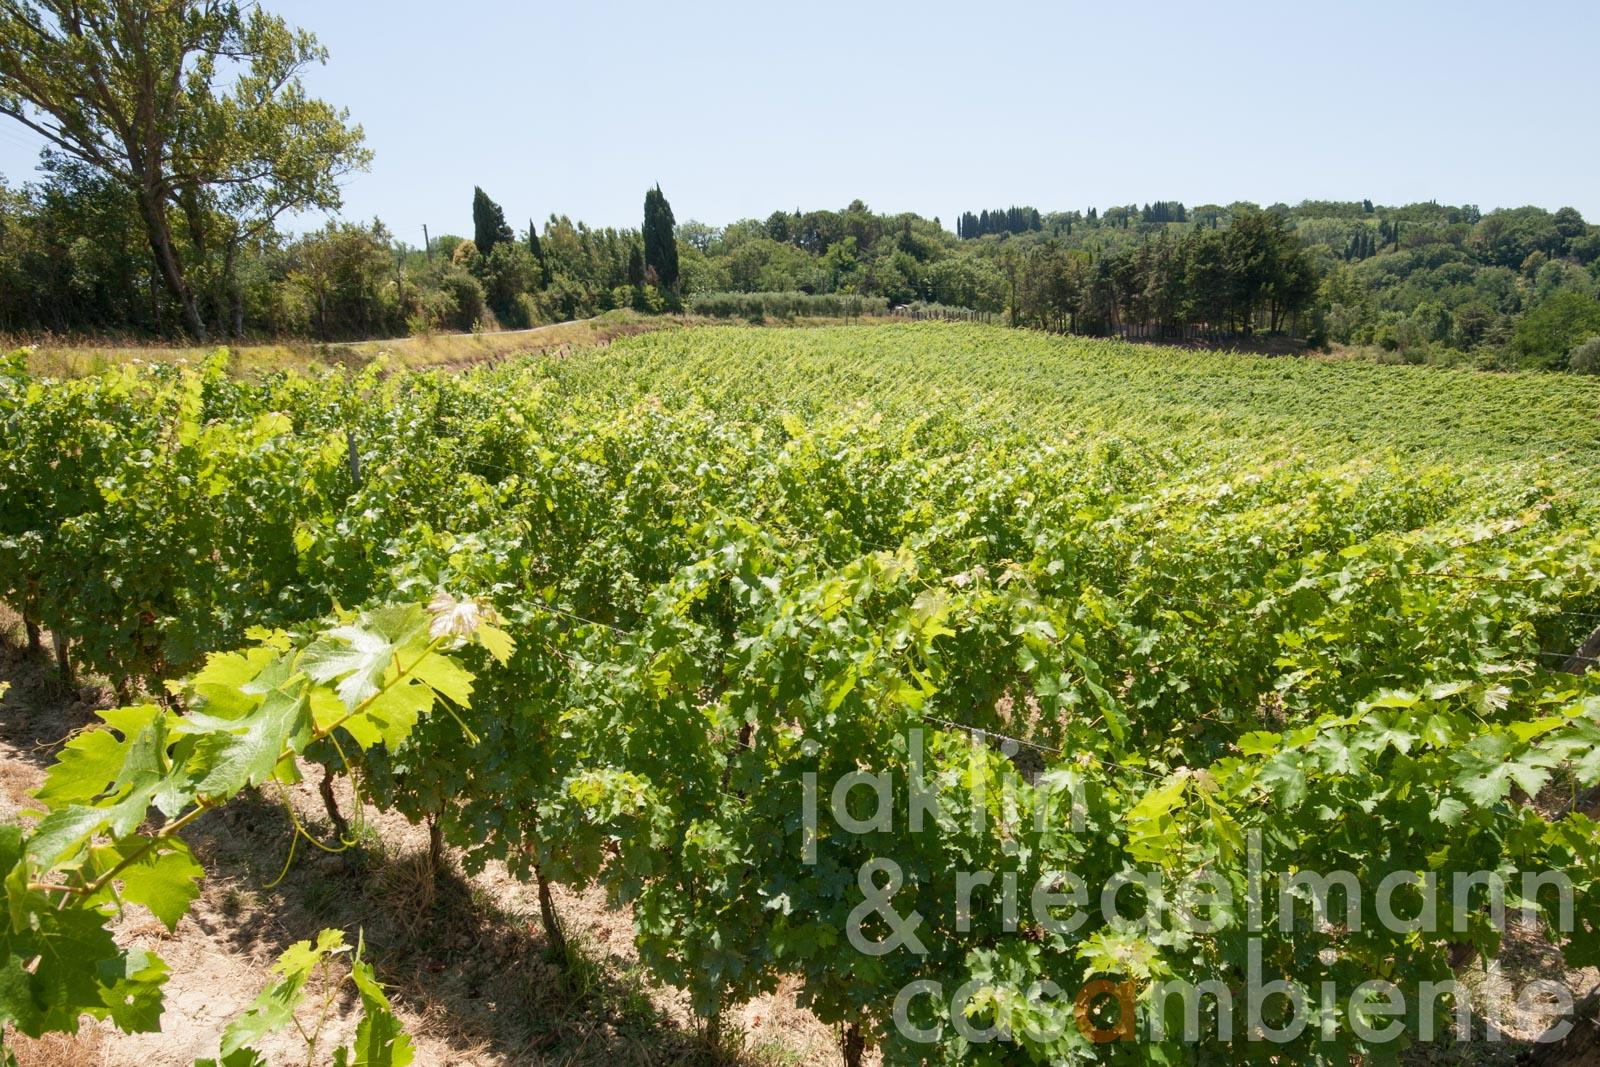 Organic winery and holiday rental property for sale in Tuscany in panoramic location close to the coast